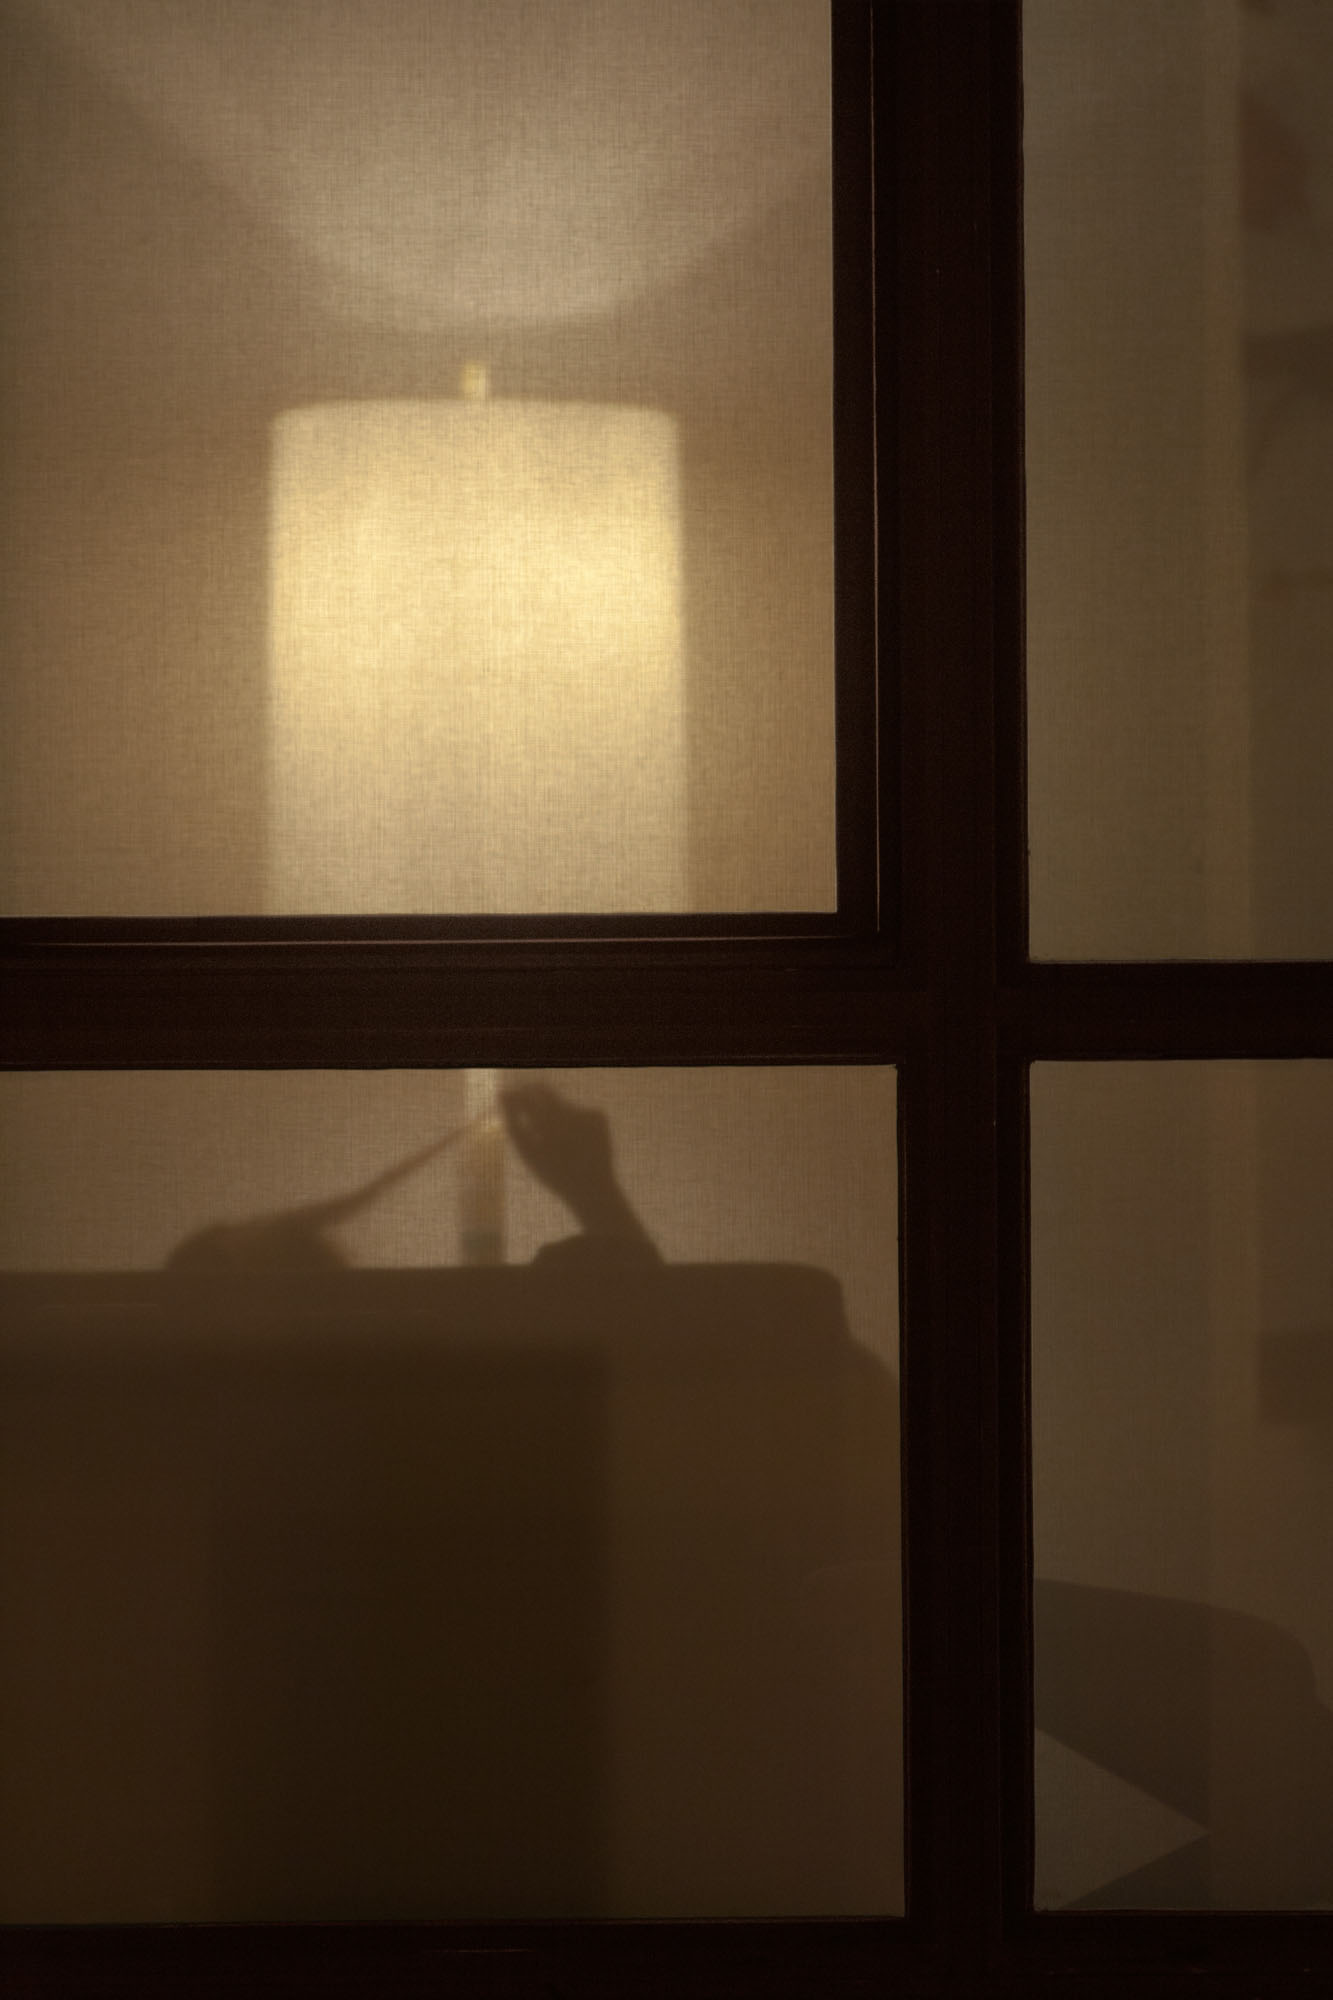 Arne Svenson, The Neighbors #4, 2012, pigment print, 45 x 30 inches